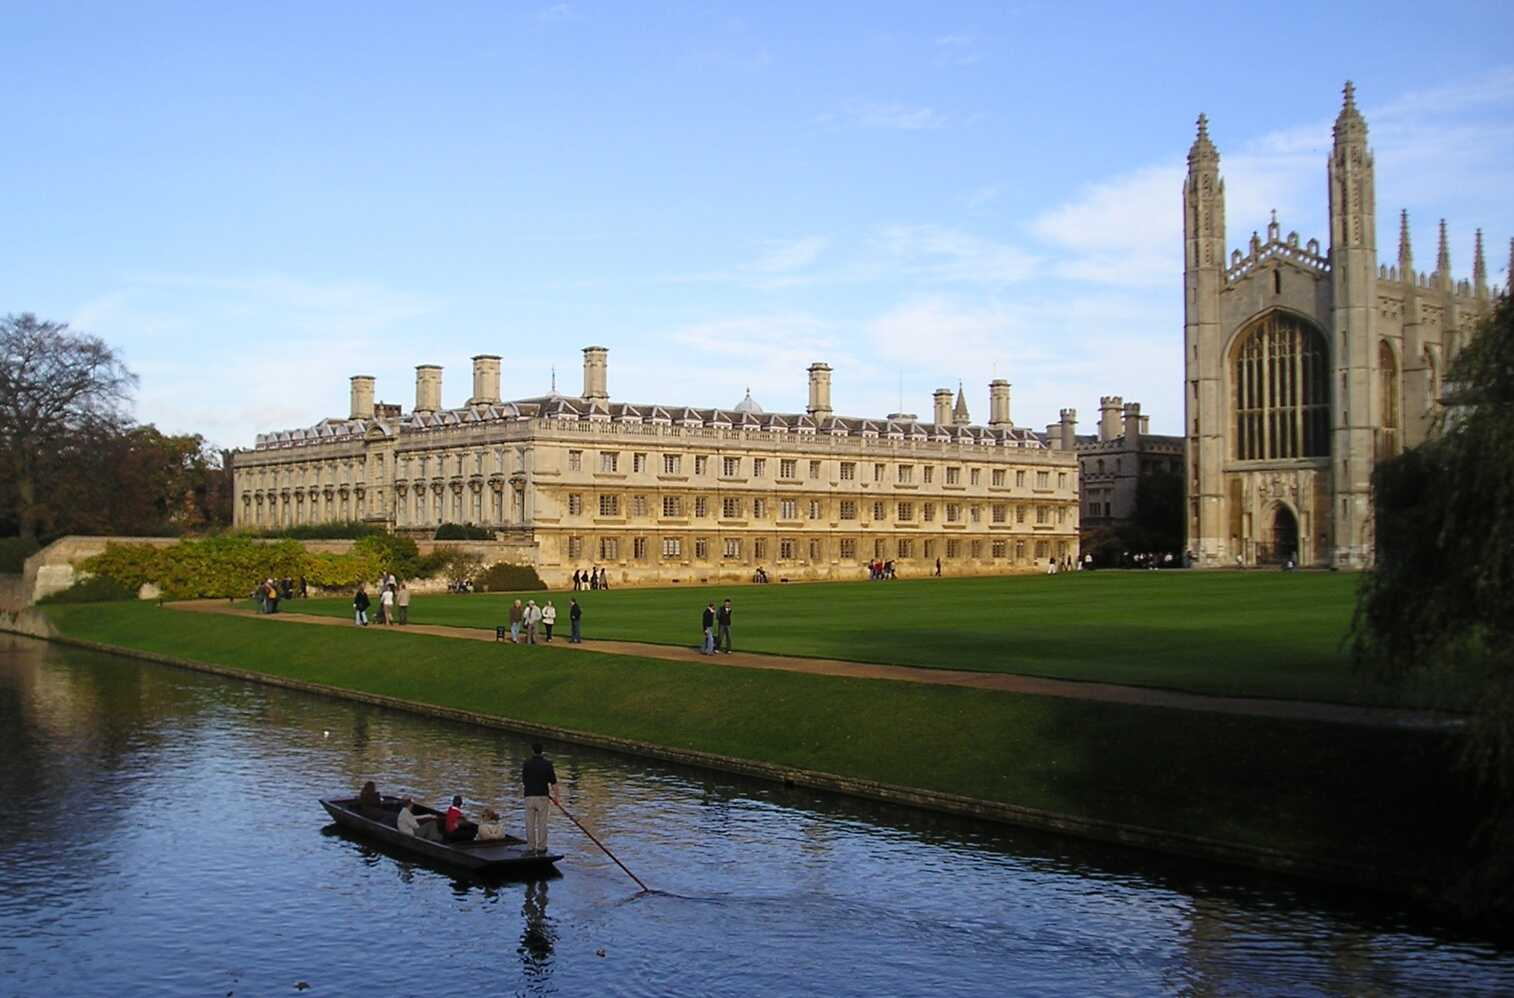 Trinity College Cambridge with the river Cam in the foreground